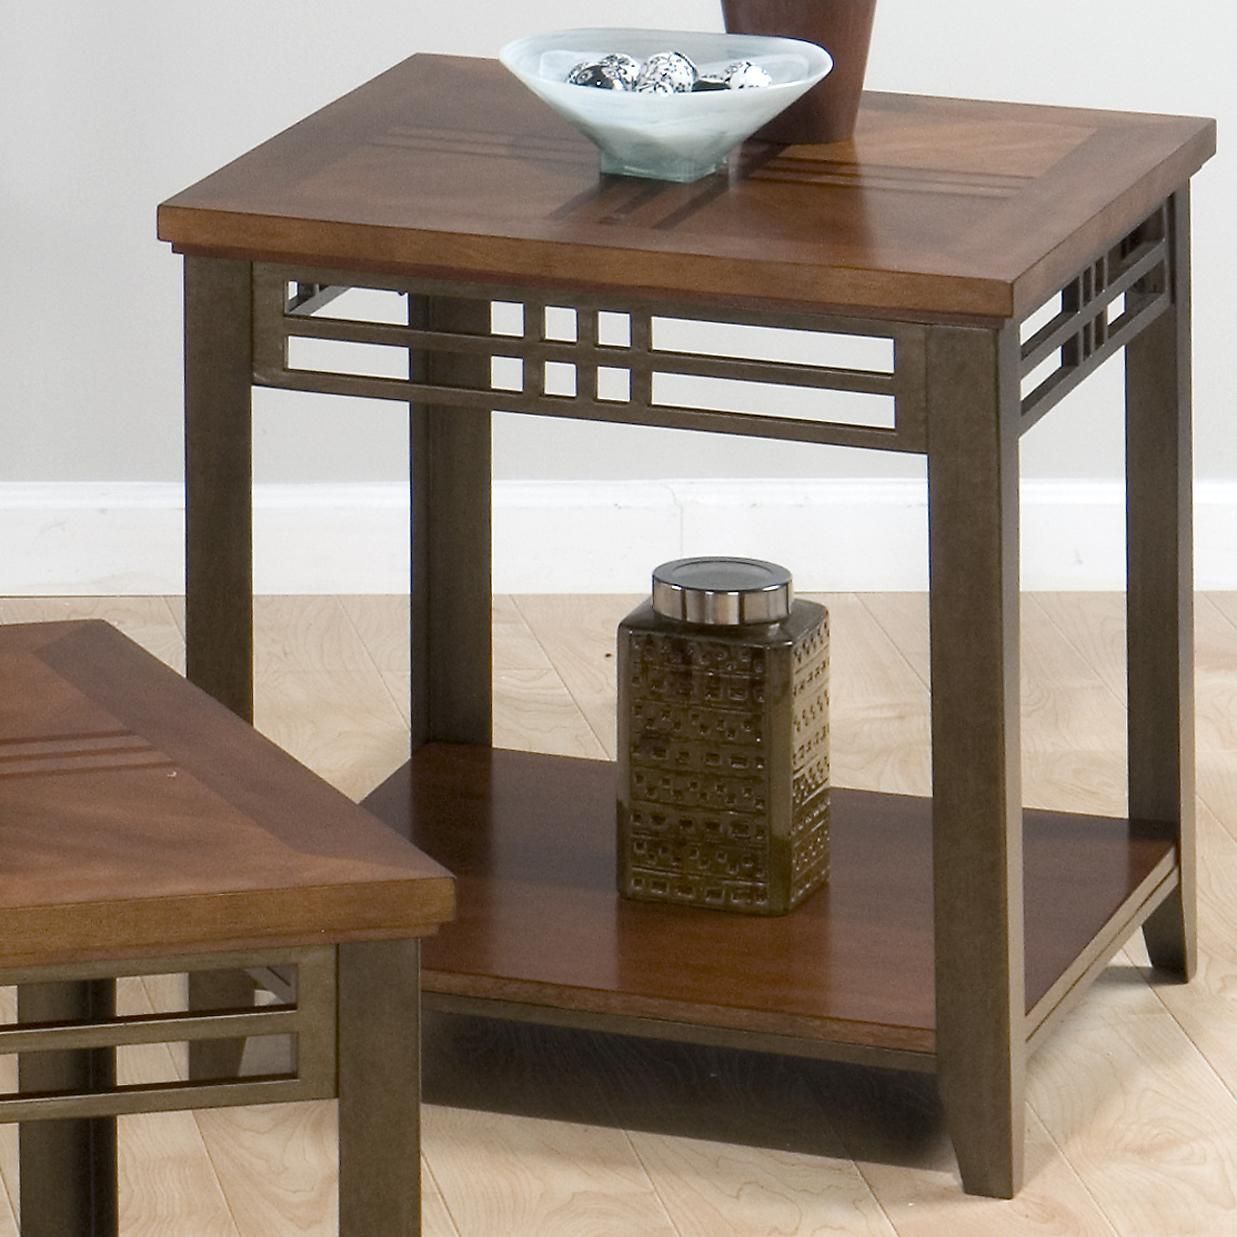 Morris Home Furnishings Barrington Cherry Bostic Hill End Table - Item Number: 536-3